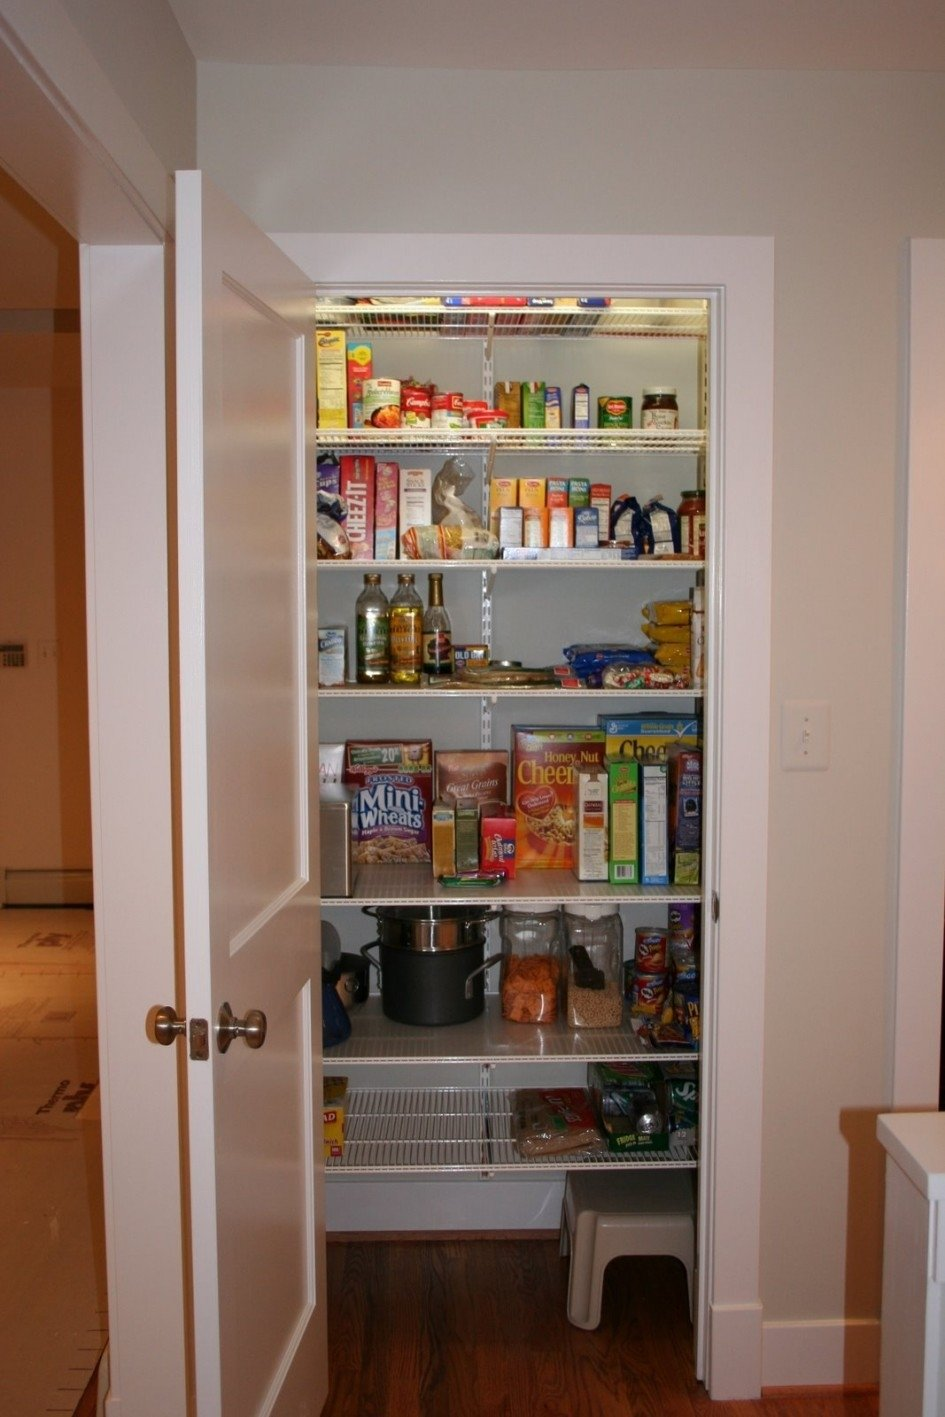 10 Ideal Walk In Pantry Shelving Ideas walk in pantry shelving systems video and photos madlonsbigbear 2020